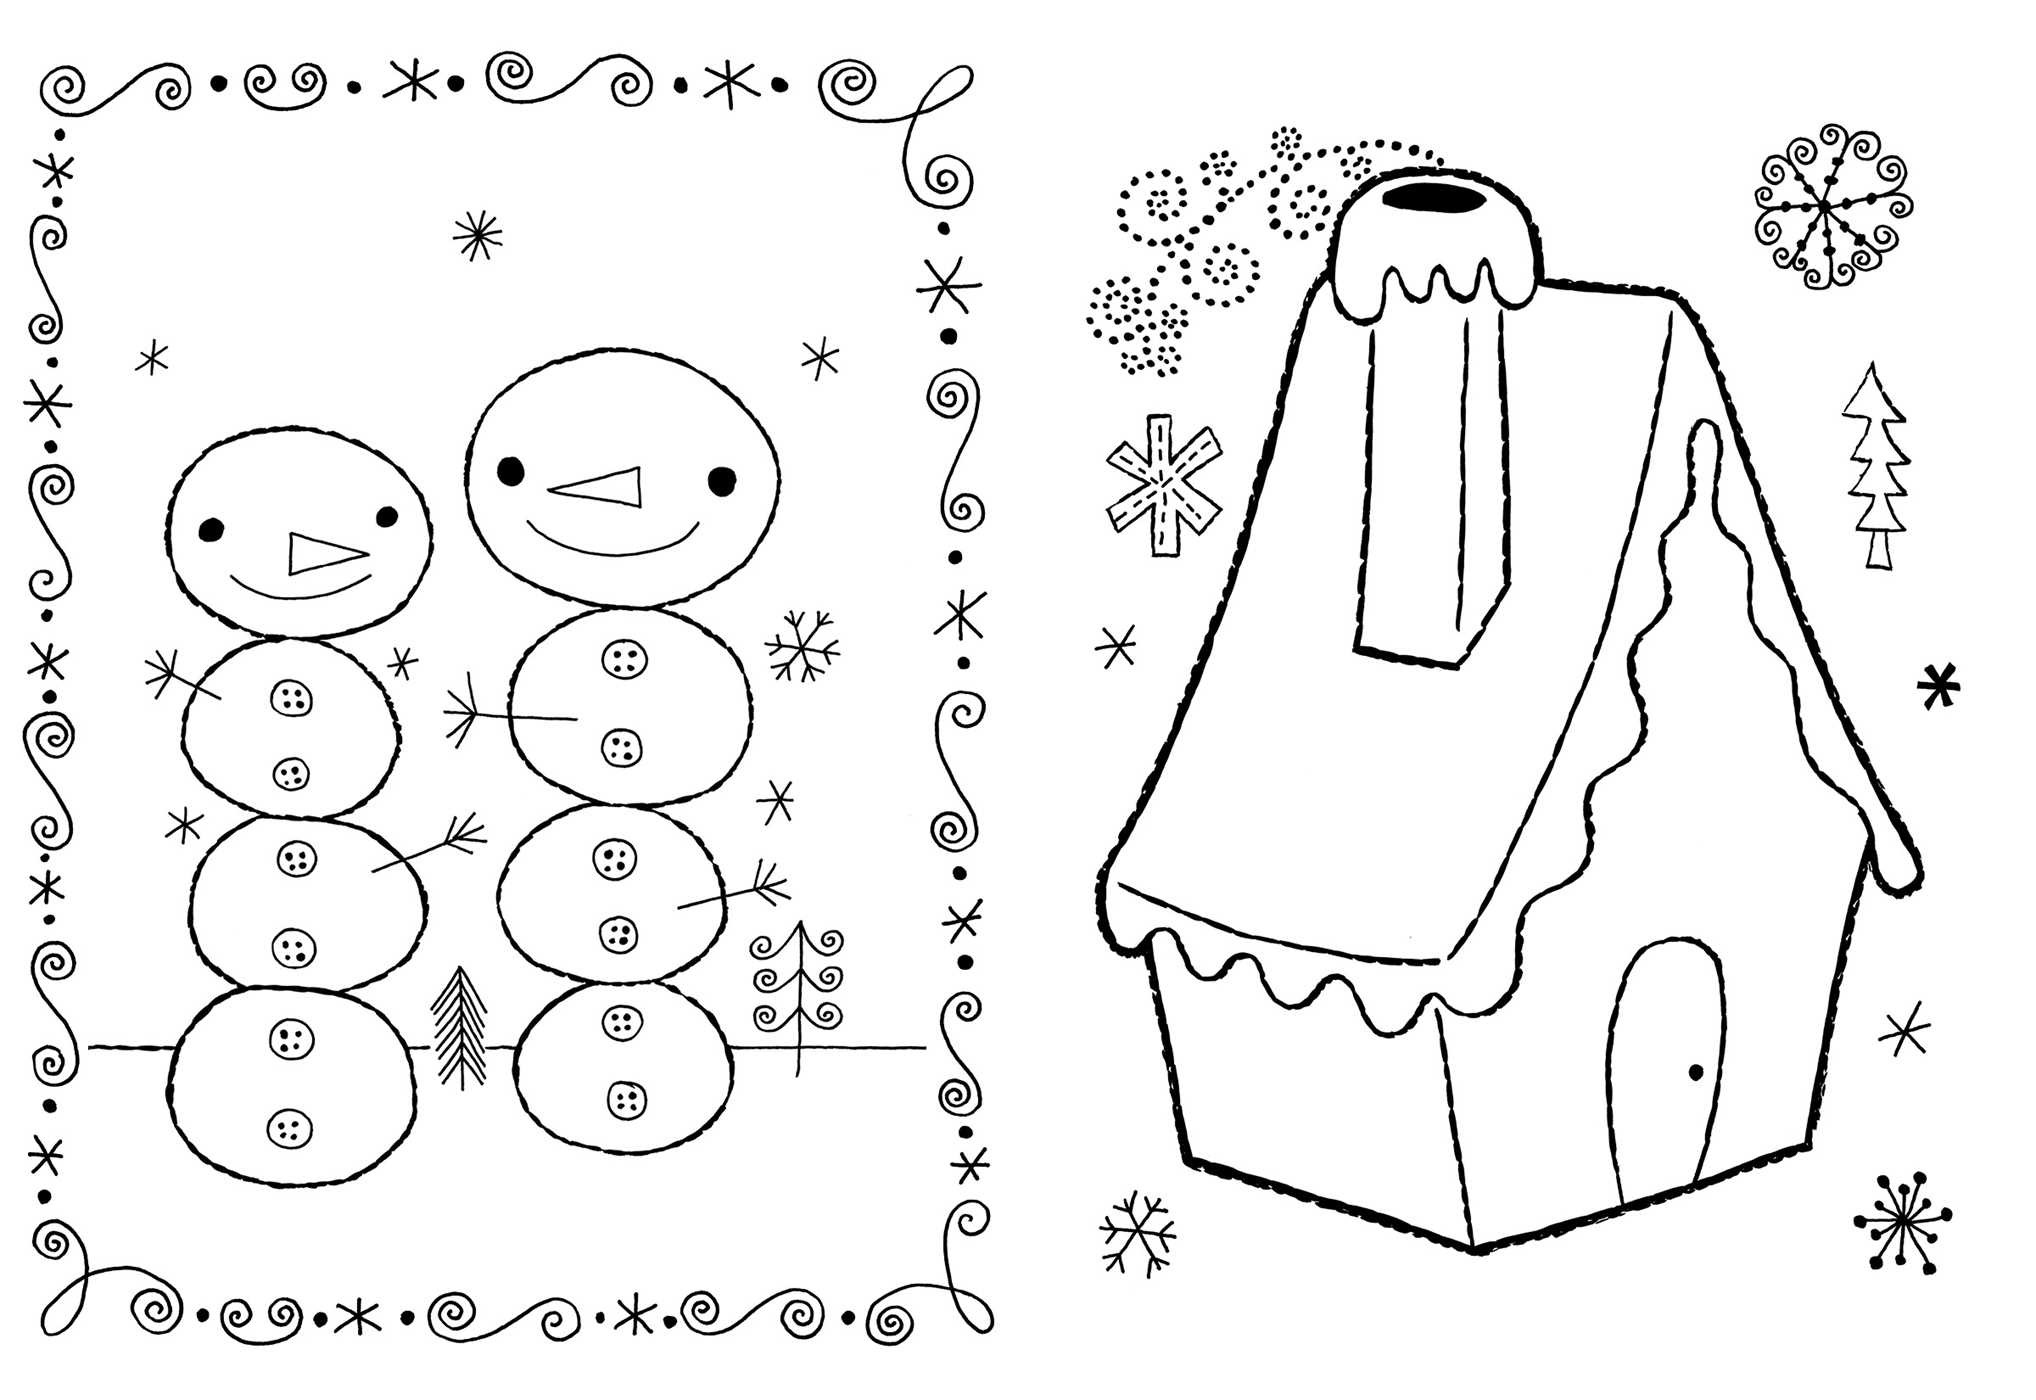 Dream-doodle-draw-gift-set-9781481471596.in01